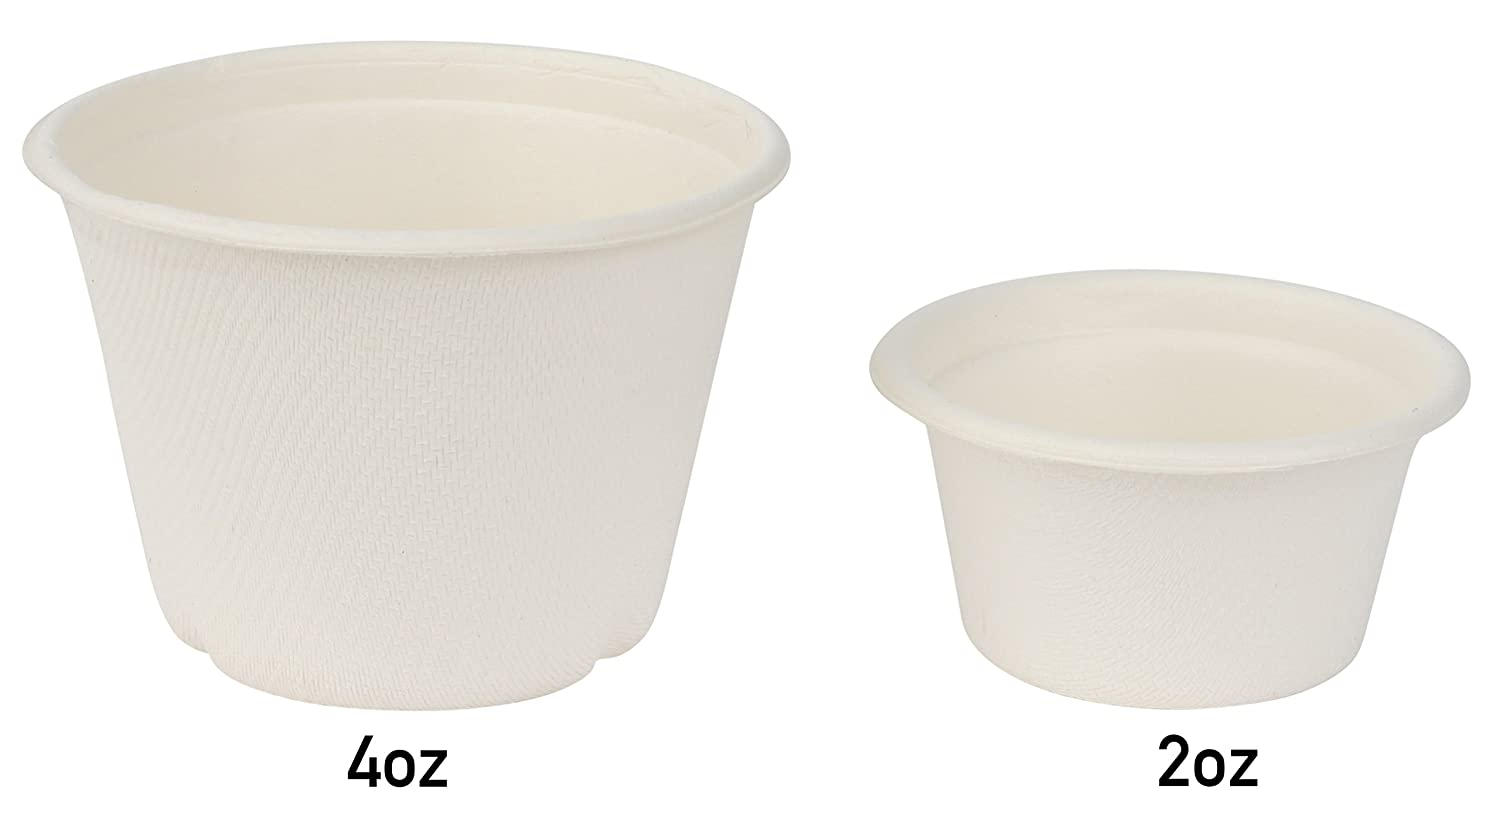 Biodegradable and Recyclable Eco Friendly Alternative to Paper and Plastic, Brheez Portion Souffle Bagasse Cups Compostable Perfect for Condiments and Samples 2 oz Cups Package of 100